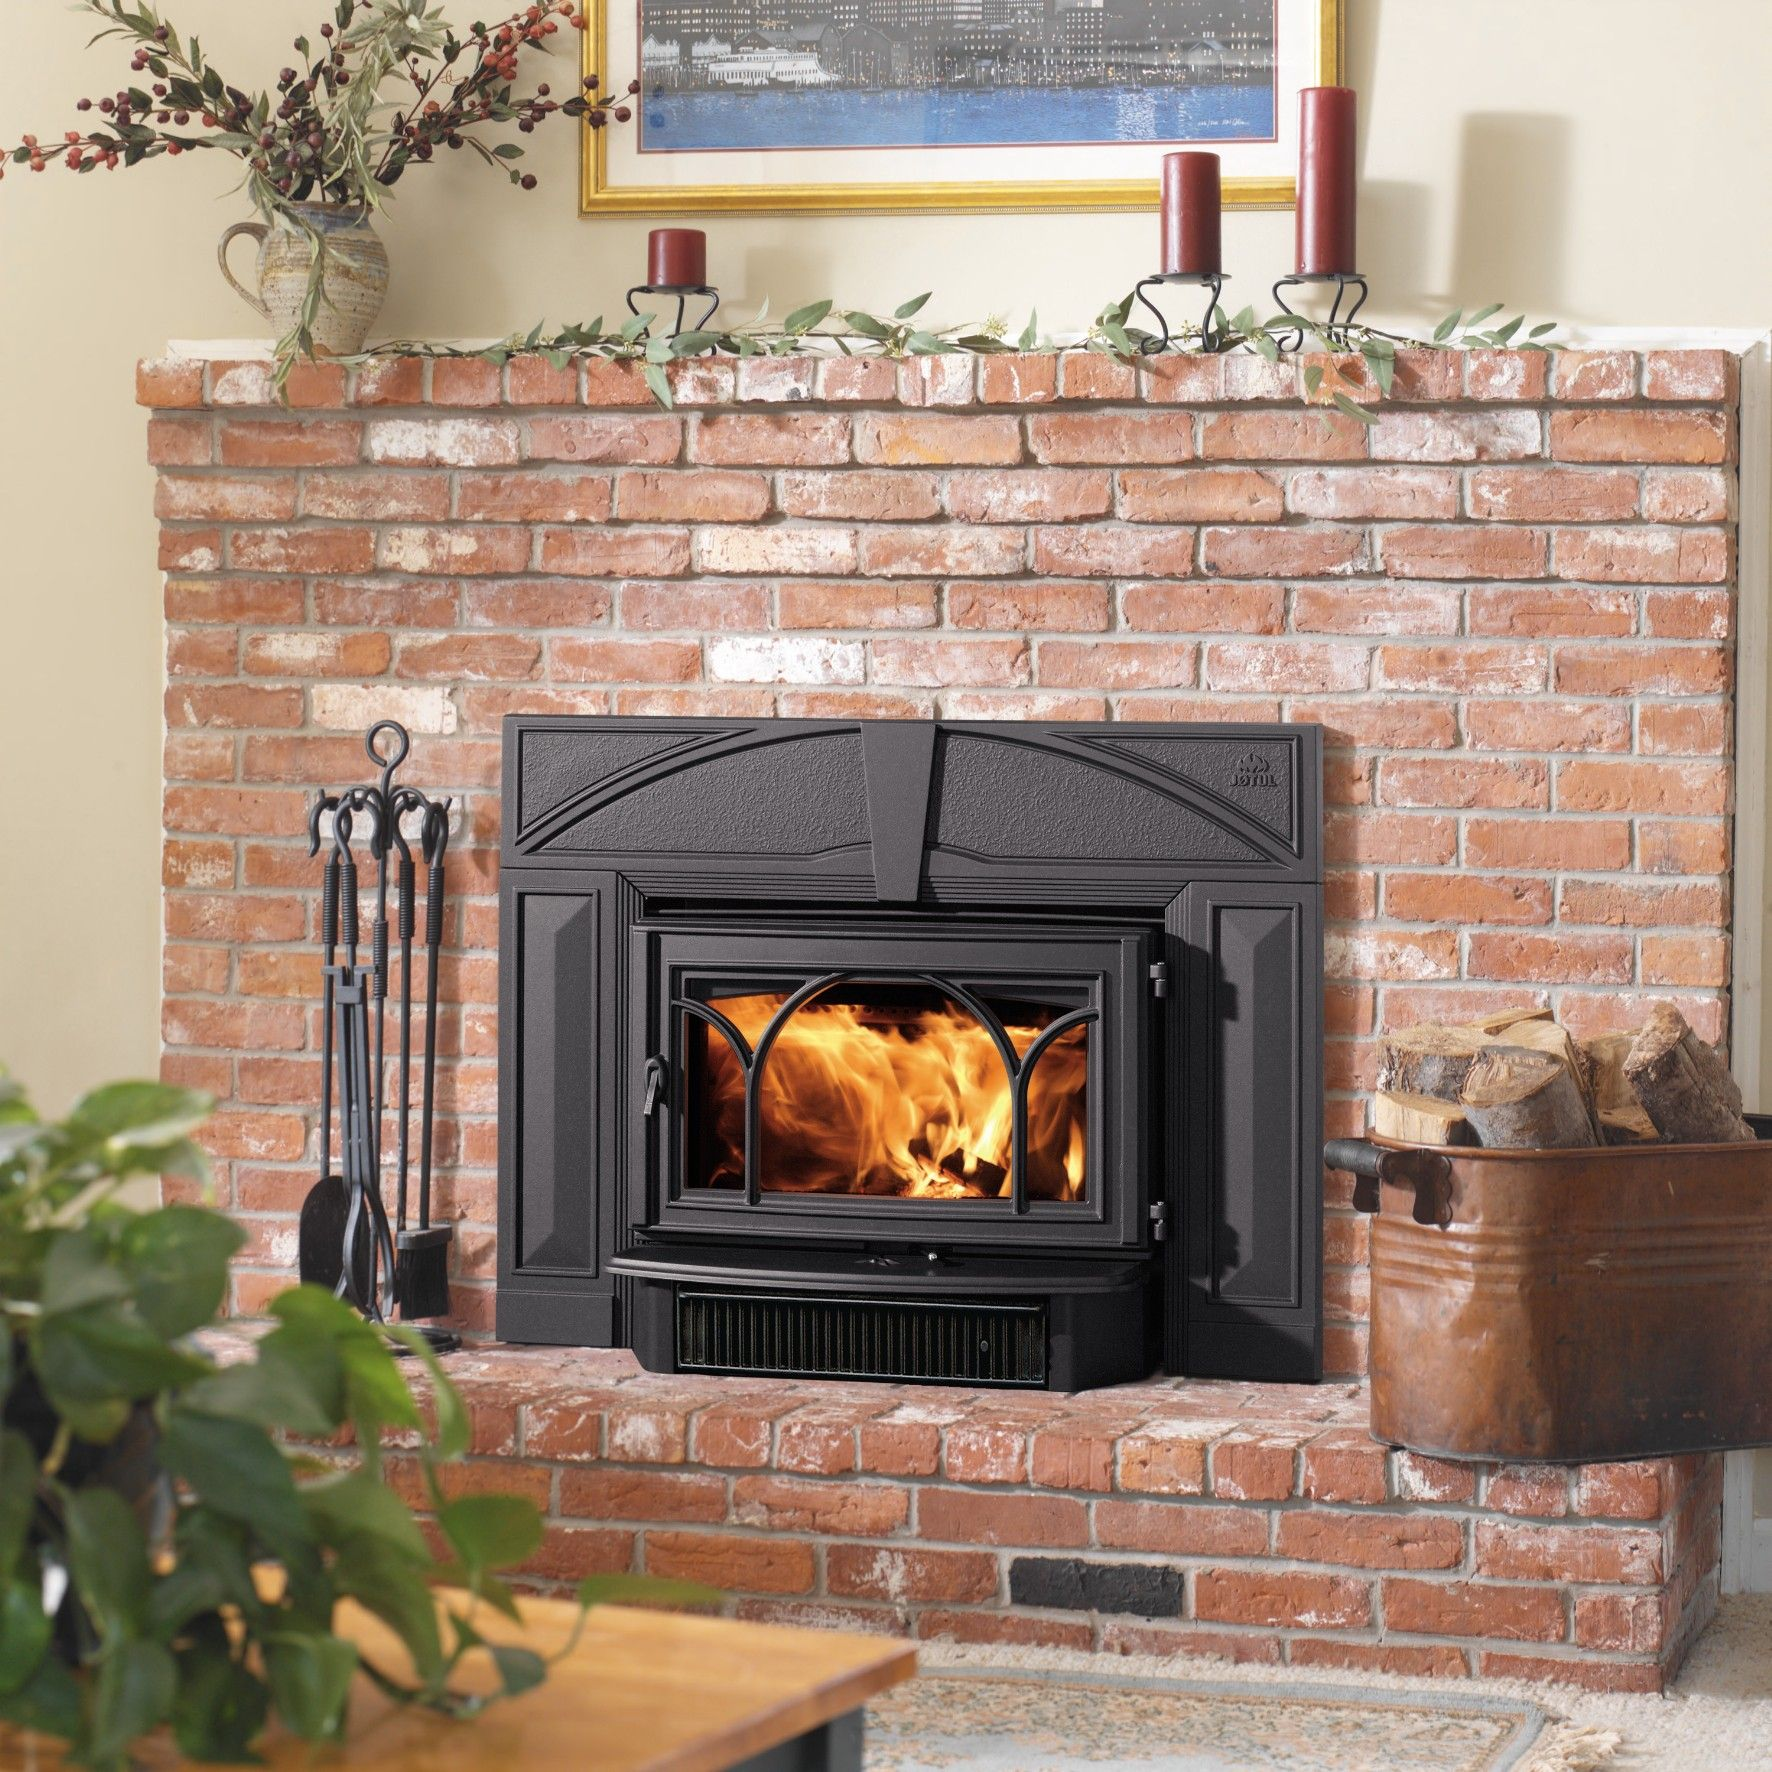 Jotul C 450 Kennebec Wood Insert Fireplaces Wood Burning Fireplace Inserts Wood Insert Wood Burning Fireplace